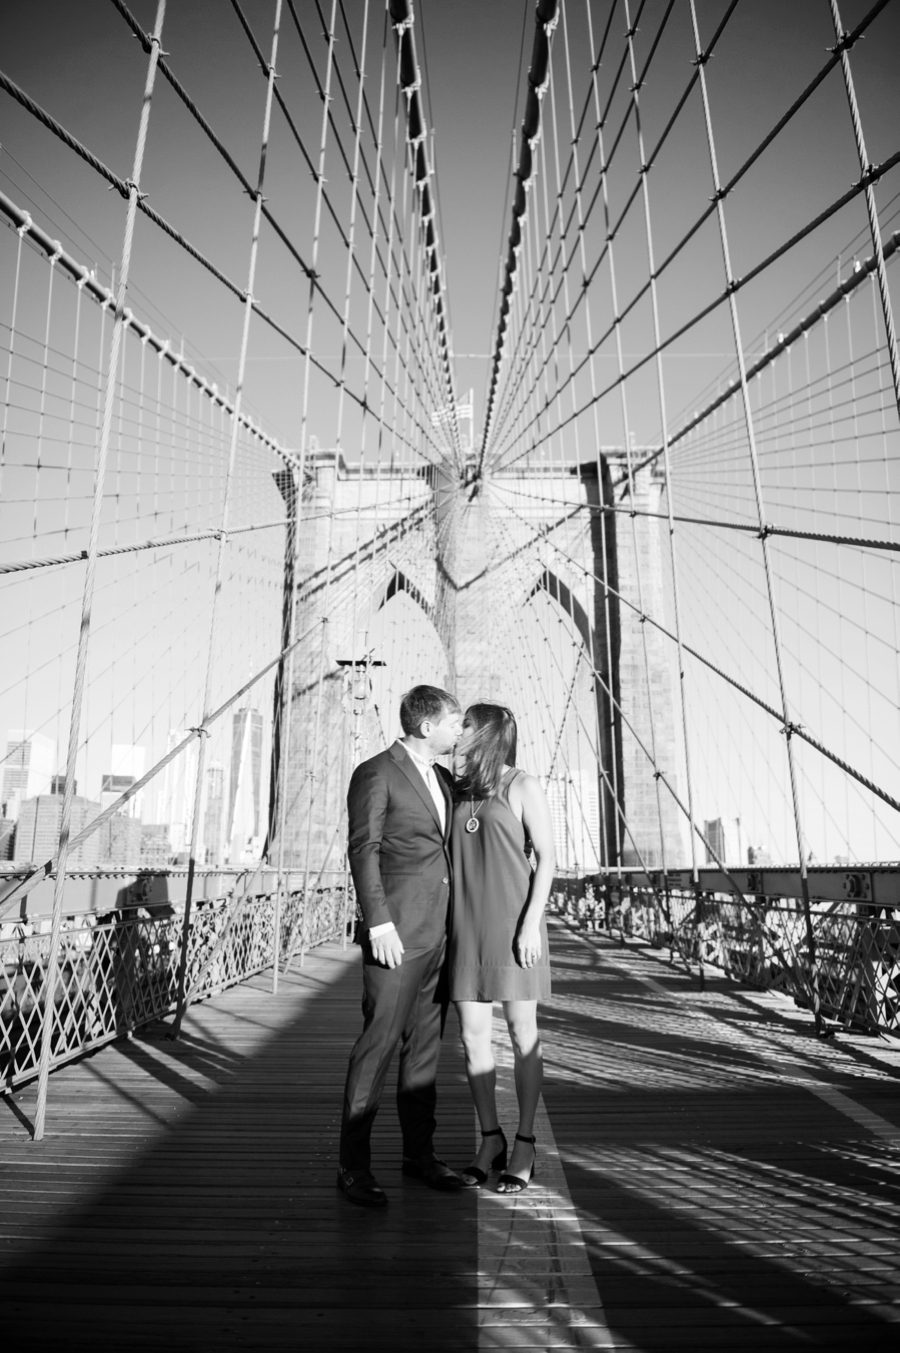 Brooklyn_Bridge_Engagement_NYC_Film_Photographer_JJ_004.jpg